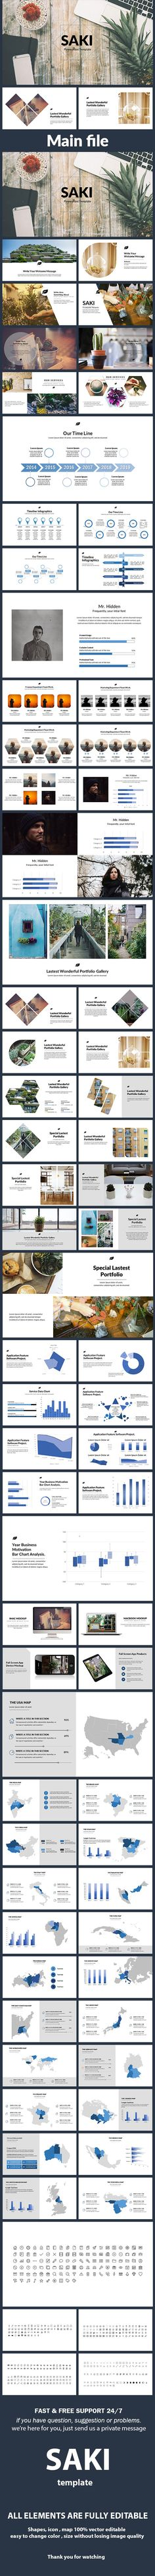 Saki - Creative Powerpoint Template - PowerPoint Templates Presentation Templates